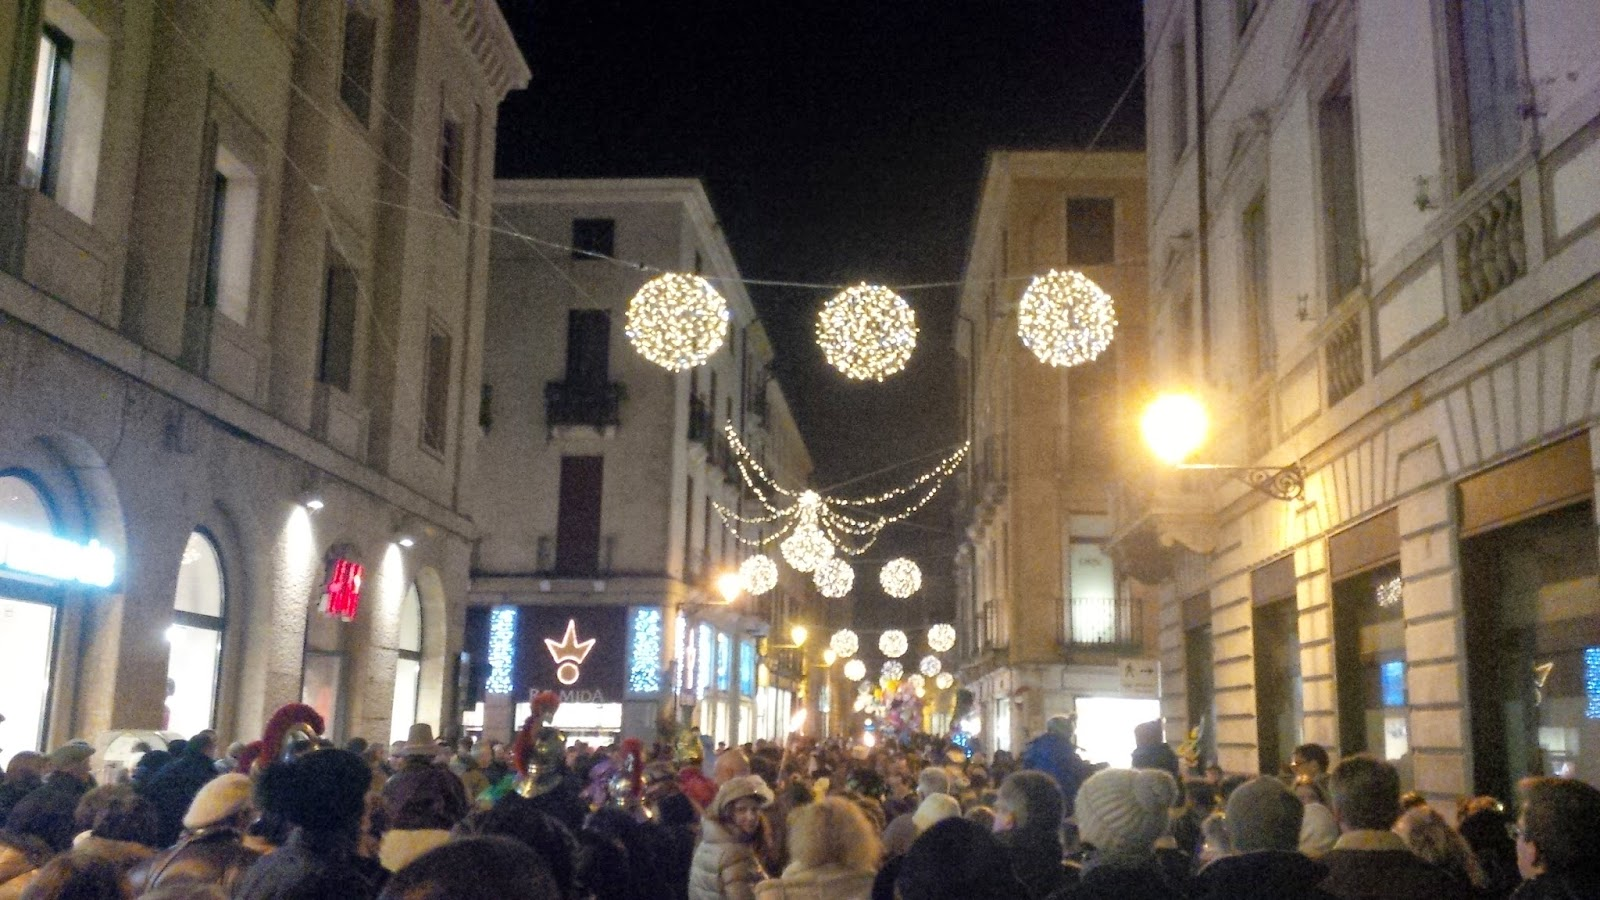 The procession following the living Nativity Scene in Vicenza